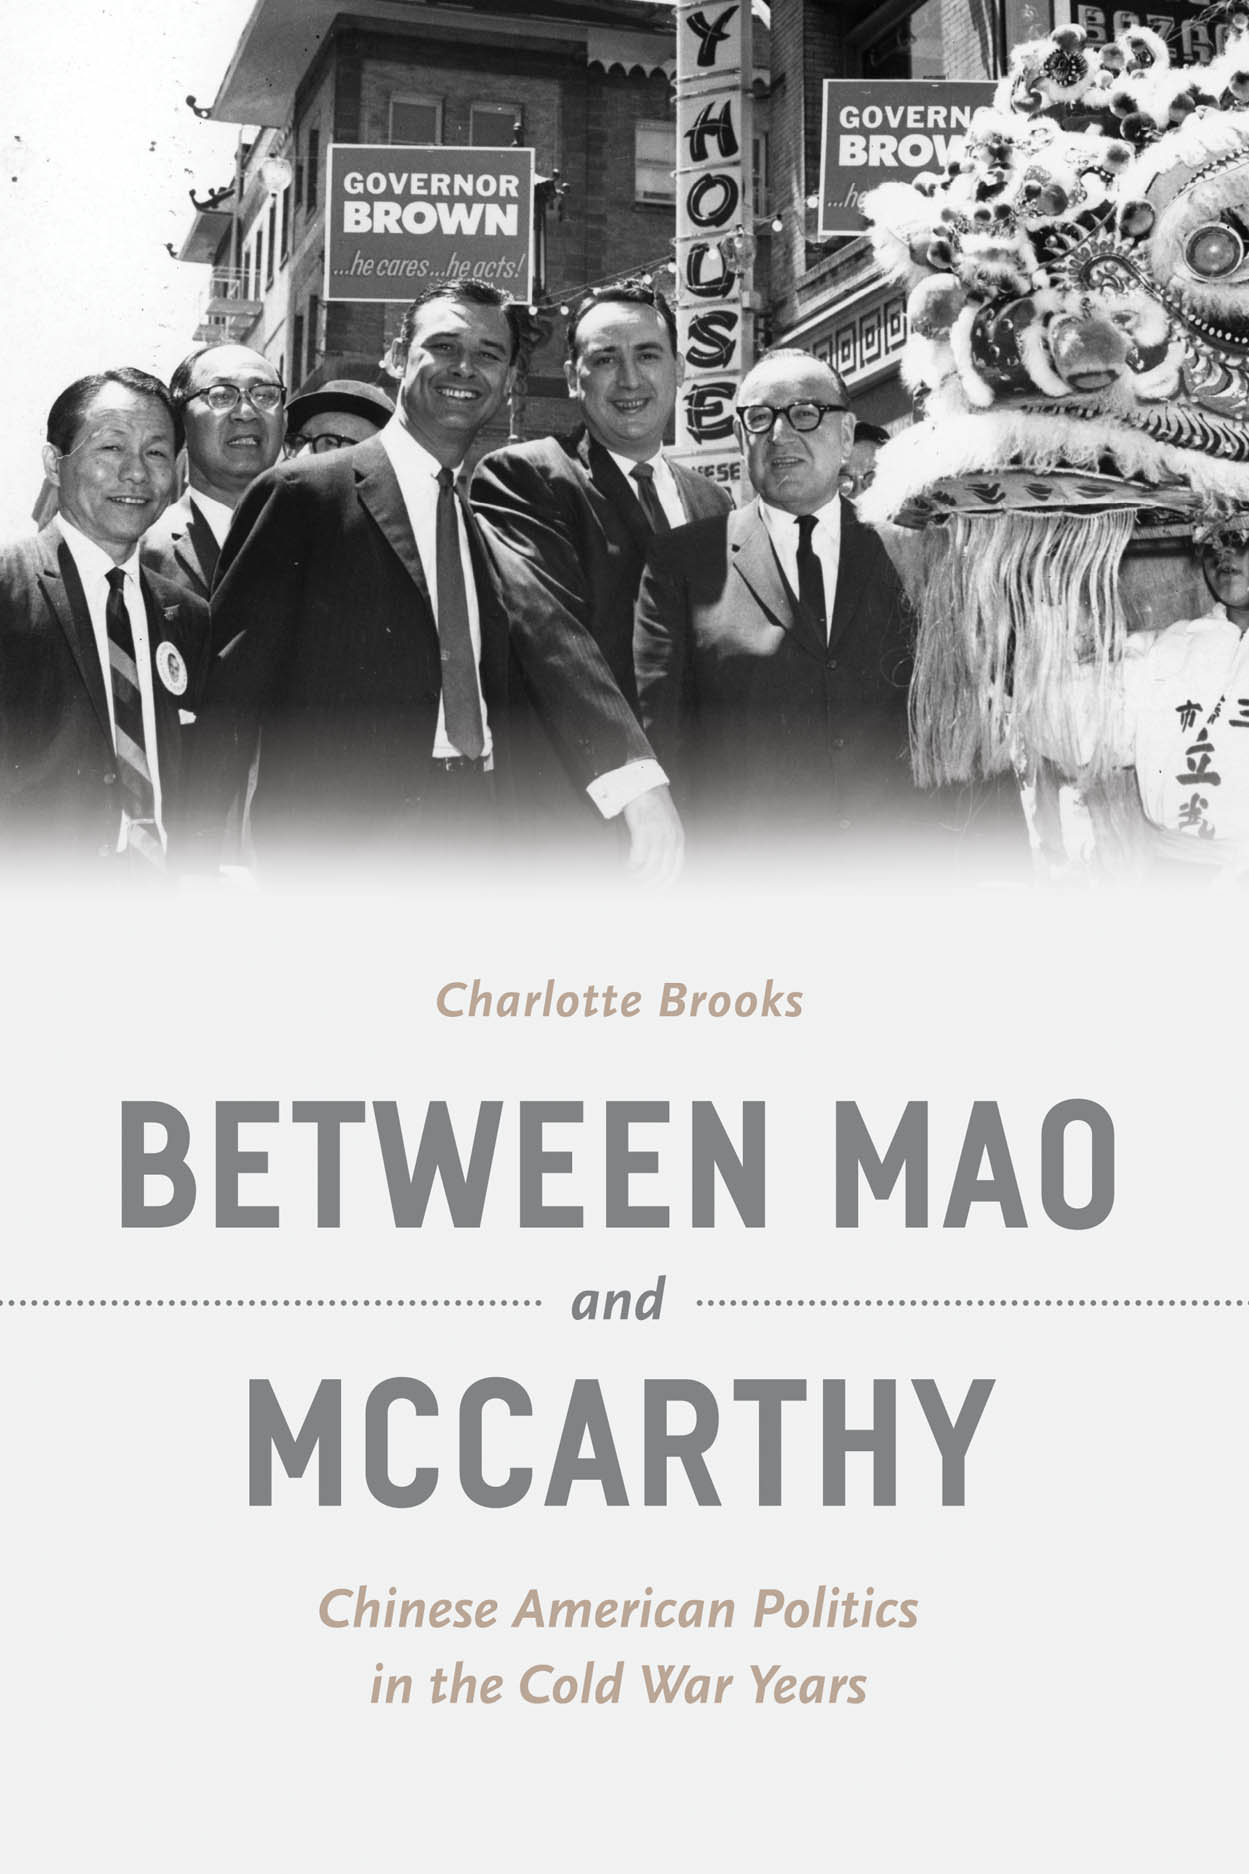 Between Mao and McCarthy